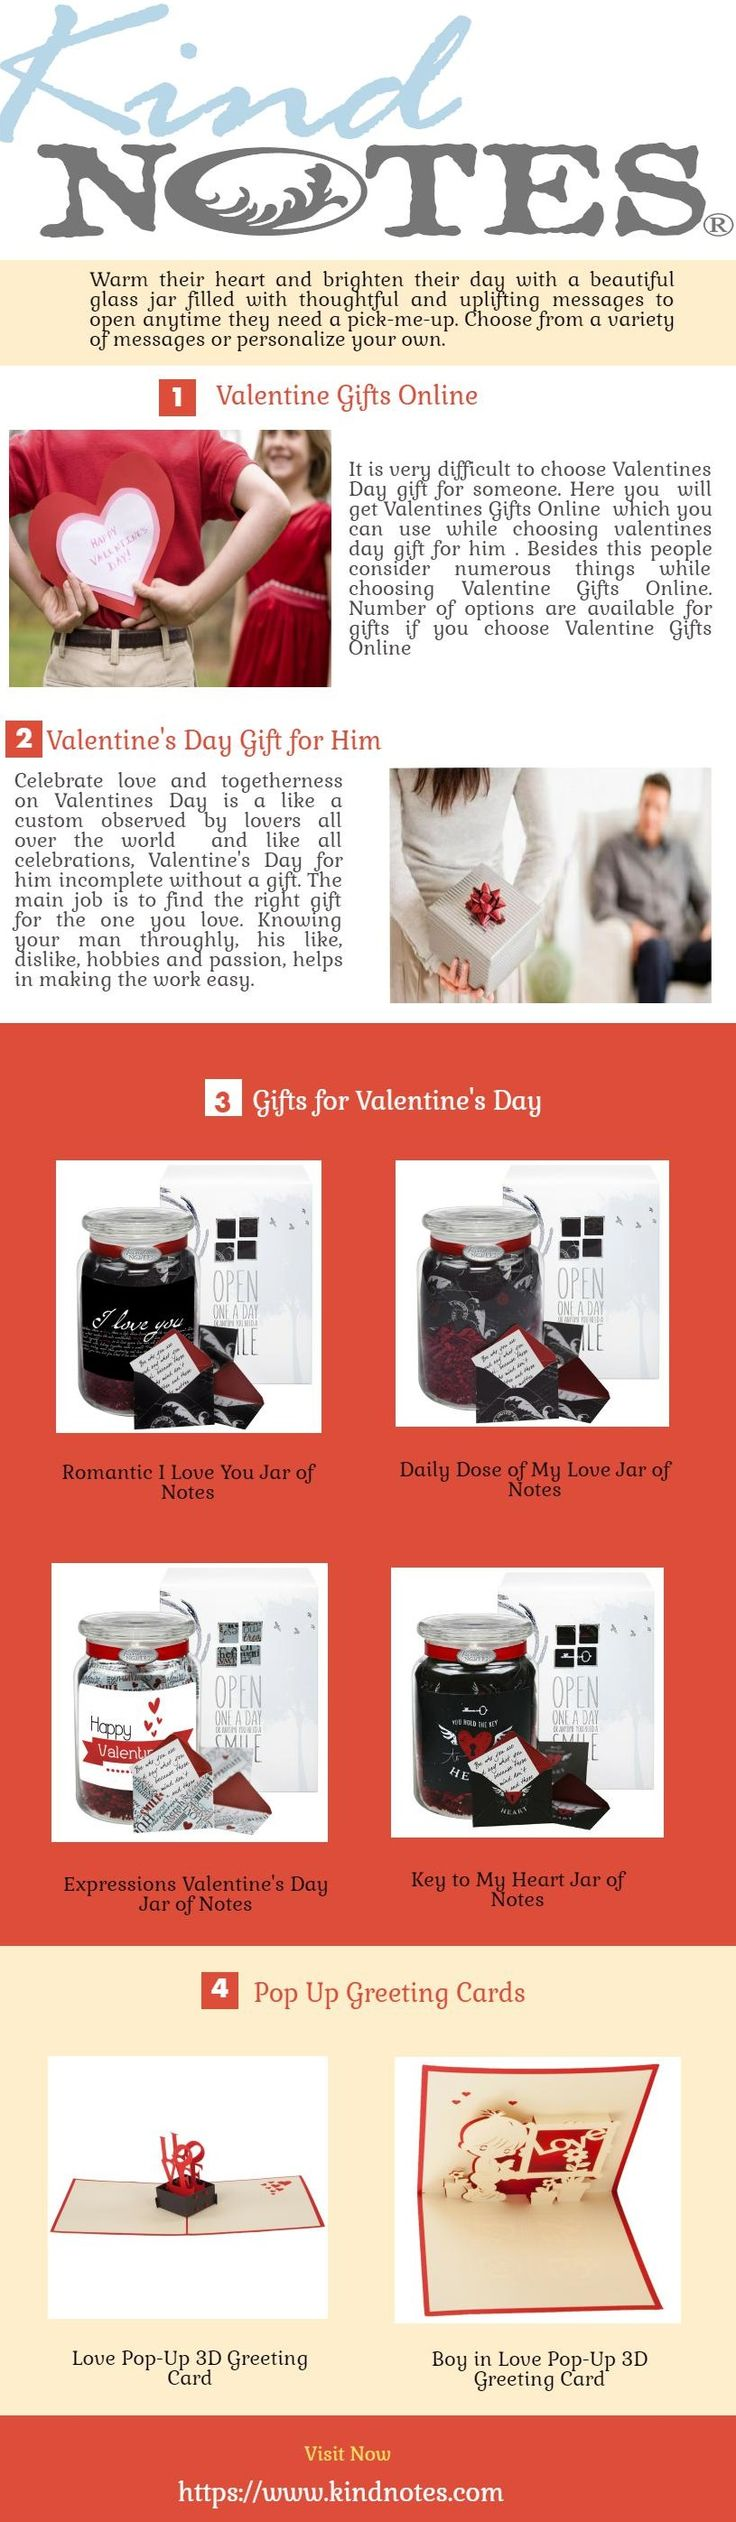 It is very difficult to choose Valentines Day gift for someone. Here you  will get Valentines Gifts Online  which you can use while choosing valentines day gift for him, valentine's day gift for her, gifts for valentine's day, best valentine gift.  Visit now: https://www.kindnotes.com/blogs/news/valentine-gifts-online